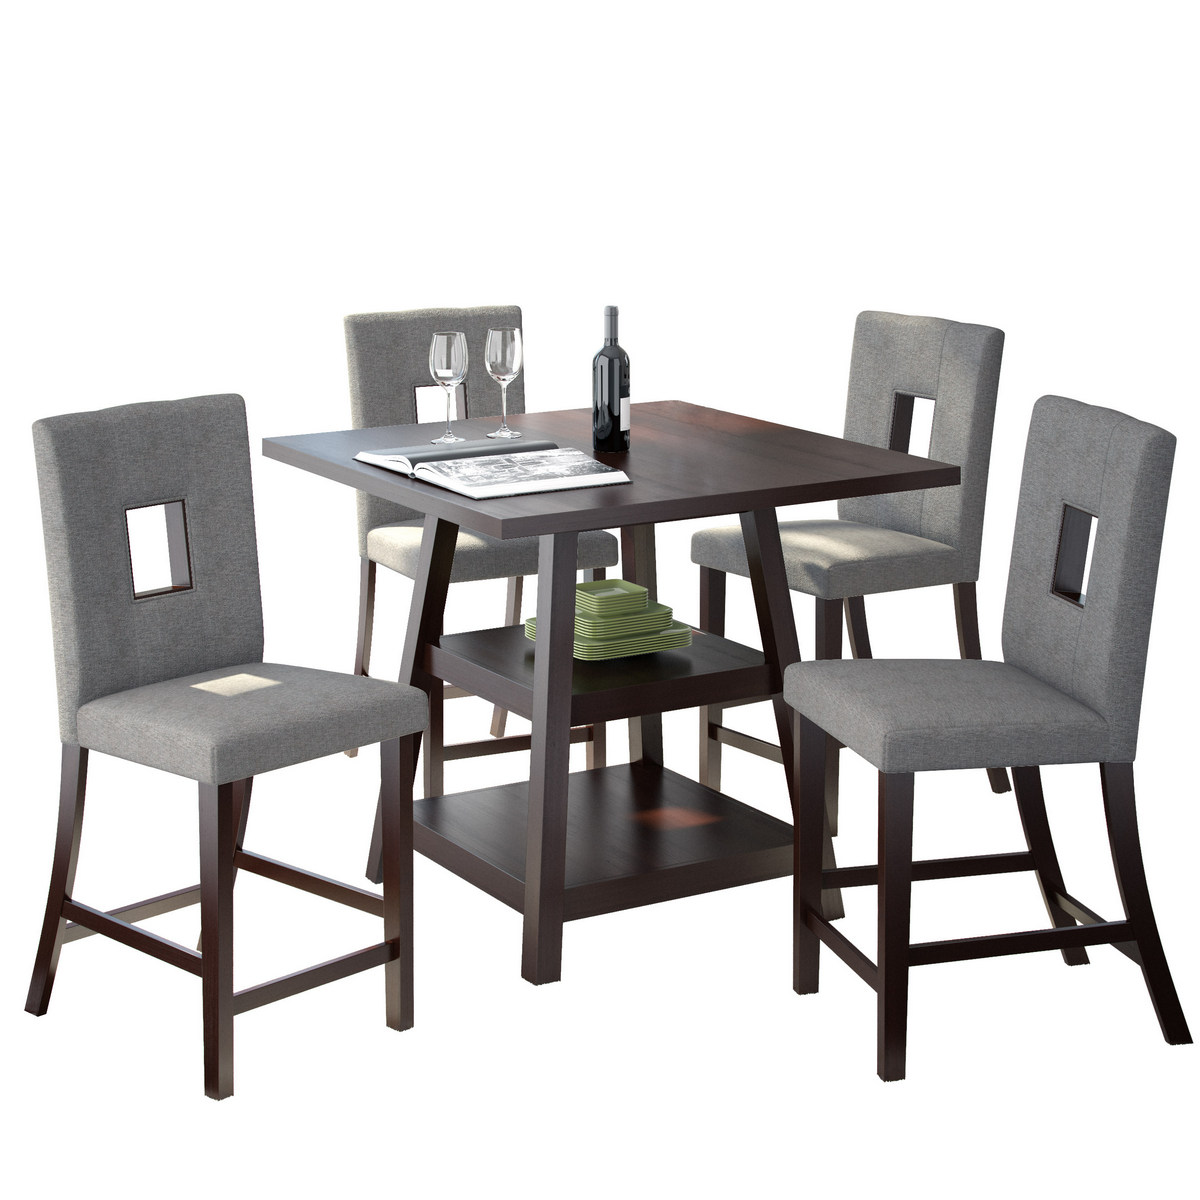 Corliving Bistro Dining Set Counter